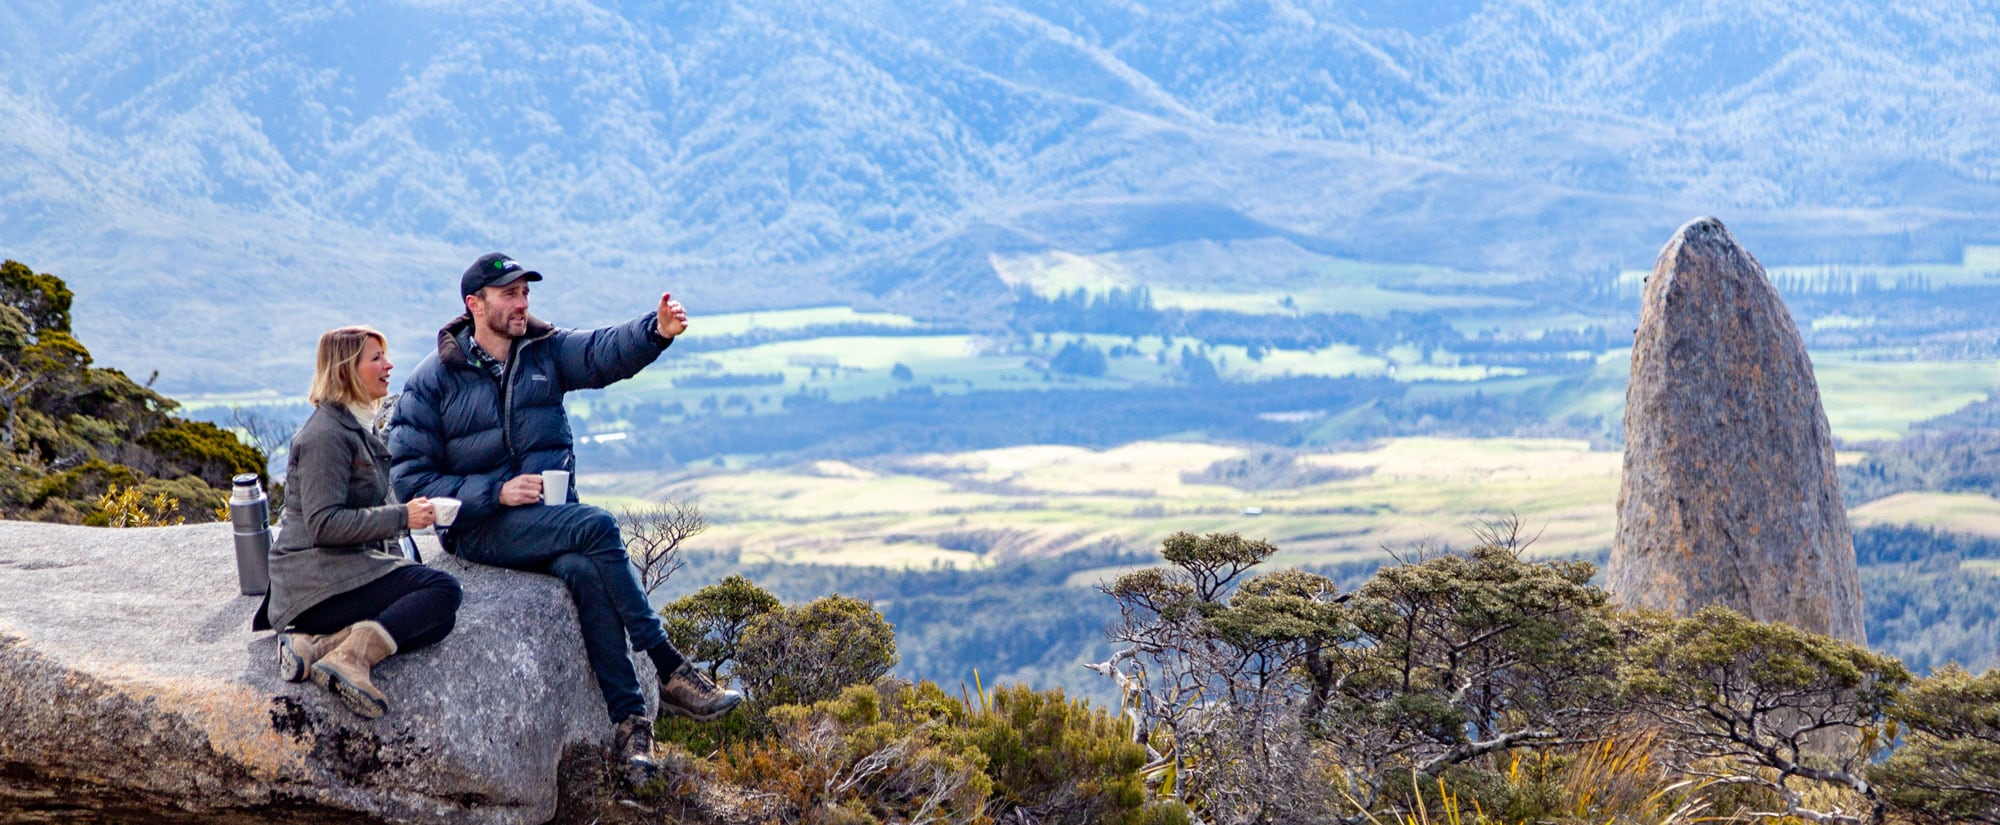 Top Of South Island, New Zealand - Samantha Brown